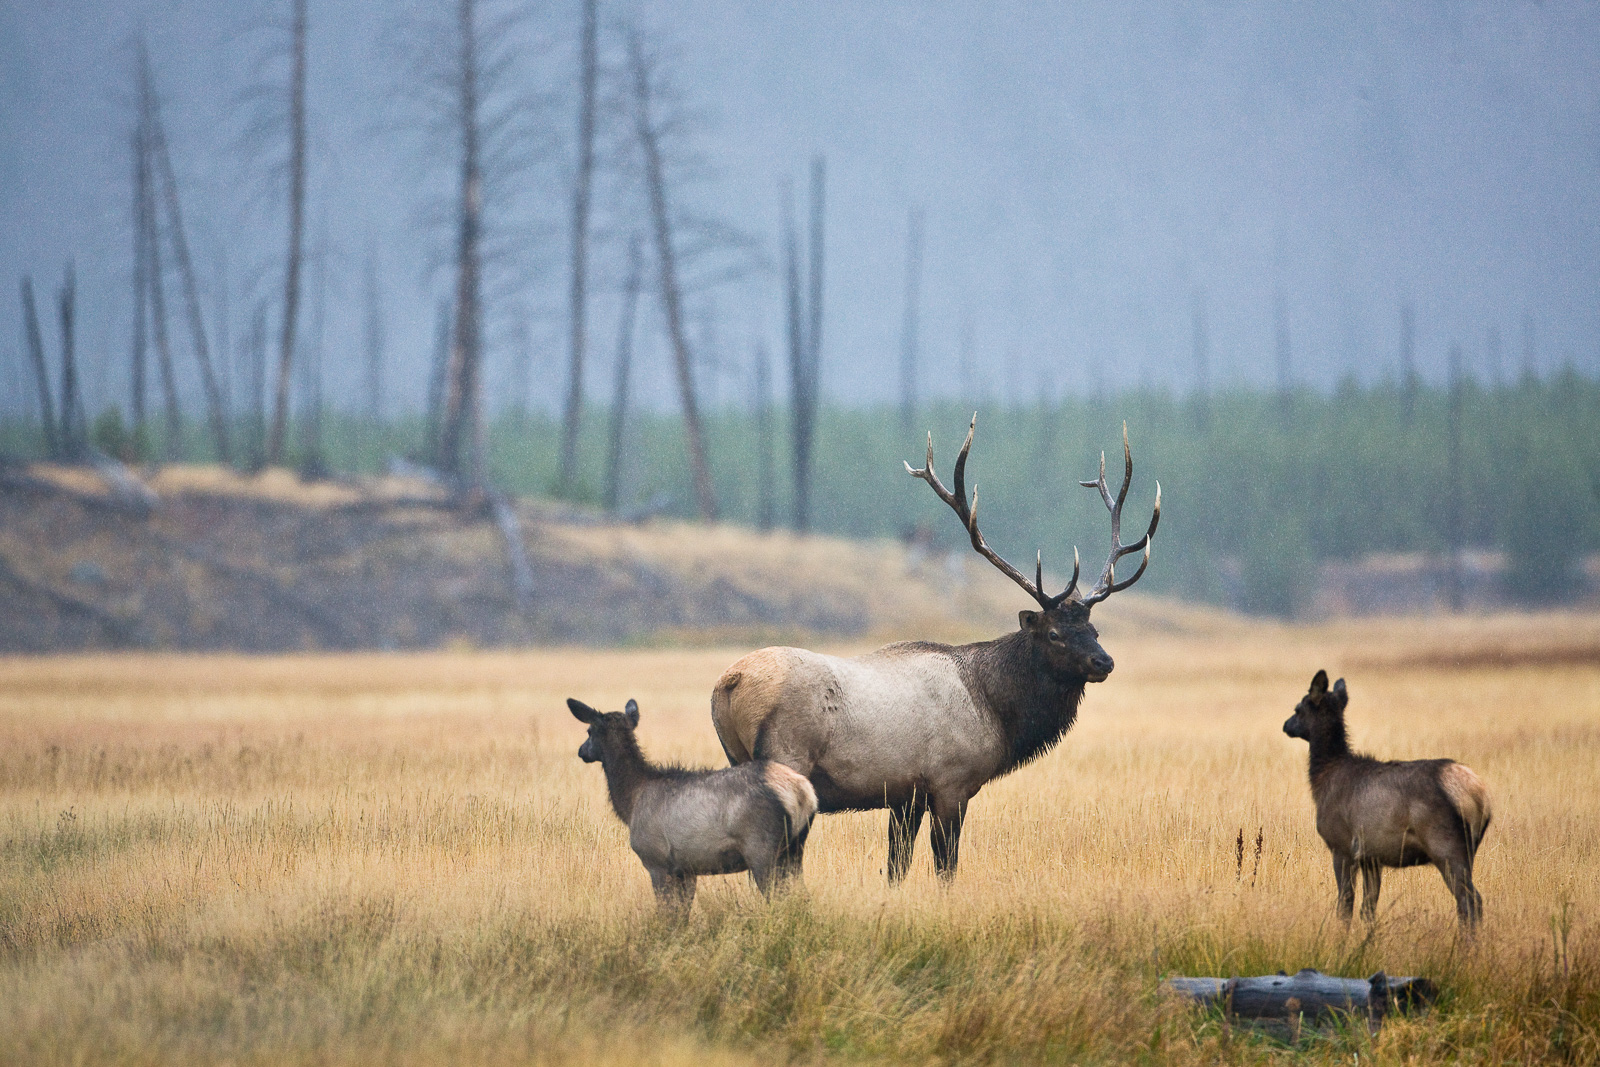 Bull elk keeps guard for predators and other competing bull elks during the rut season of autumn.